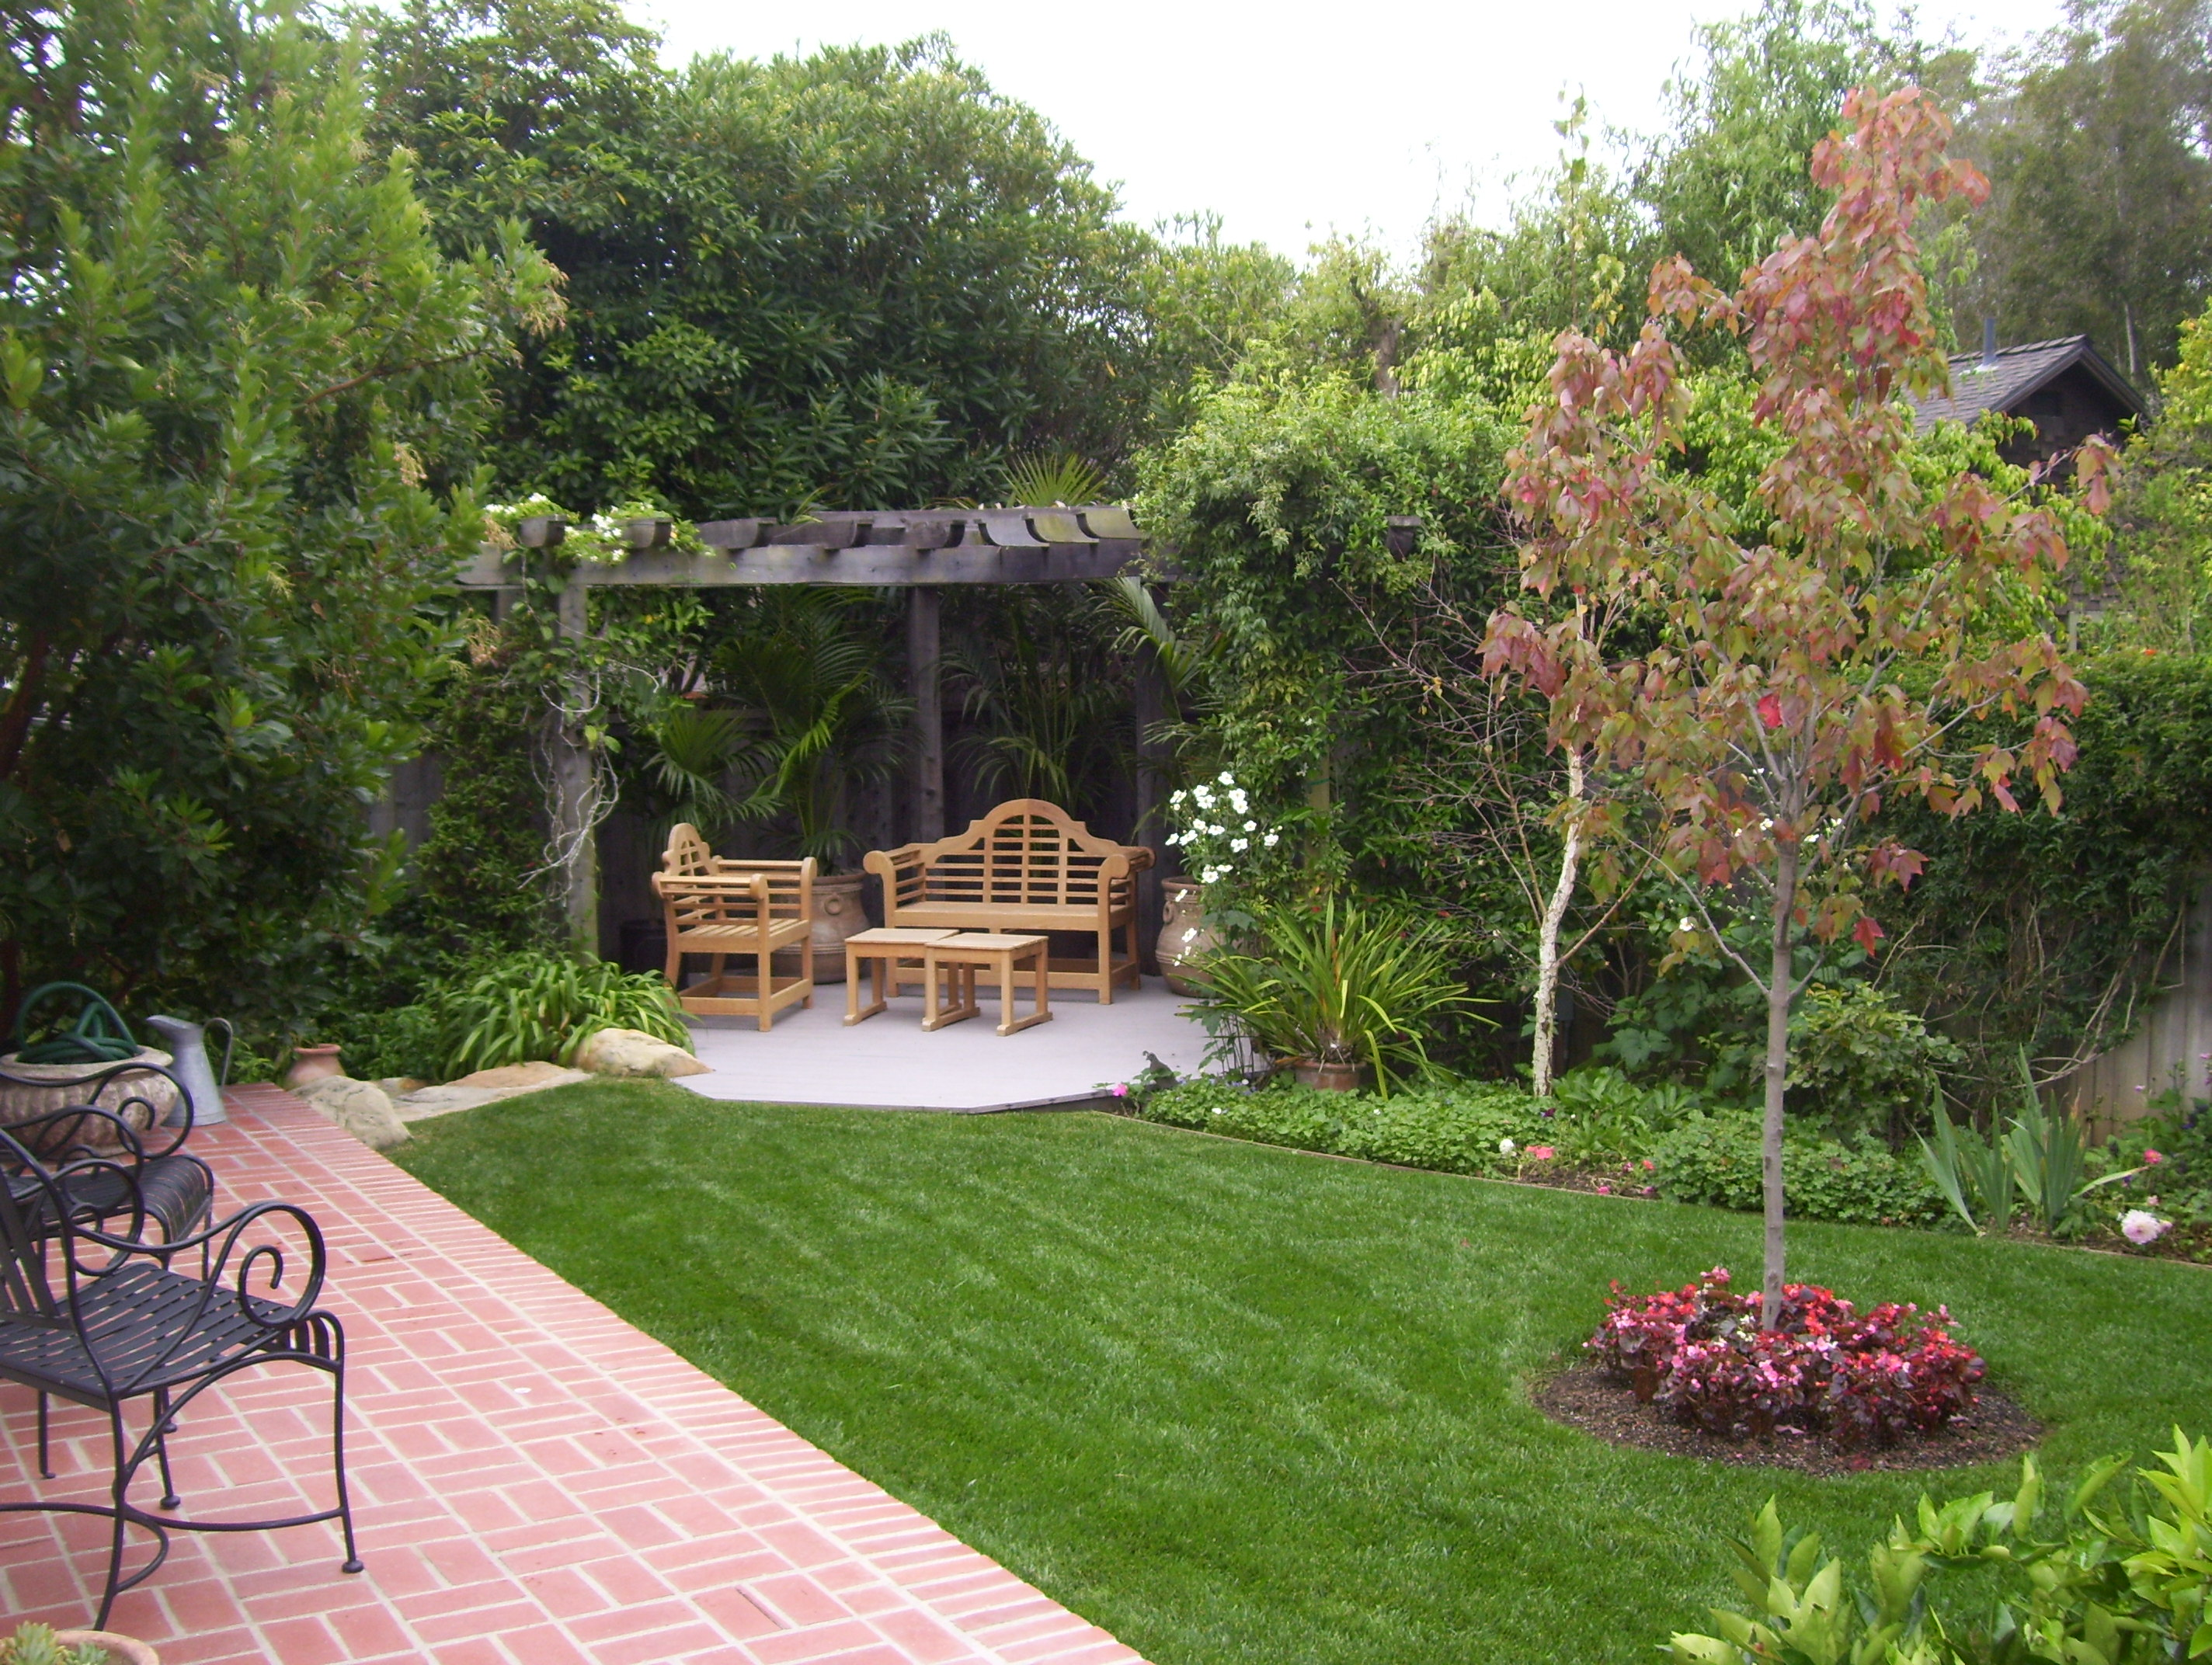 Santa barbara lawn and garden maintenenace landscape for Outdoor garden design